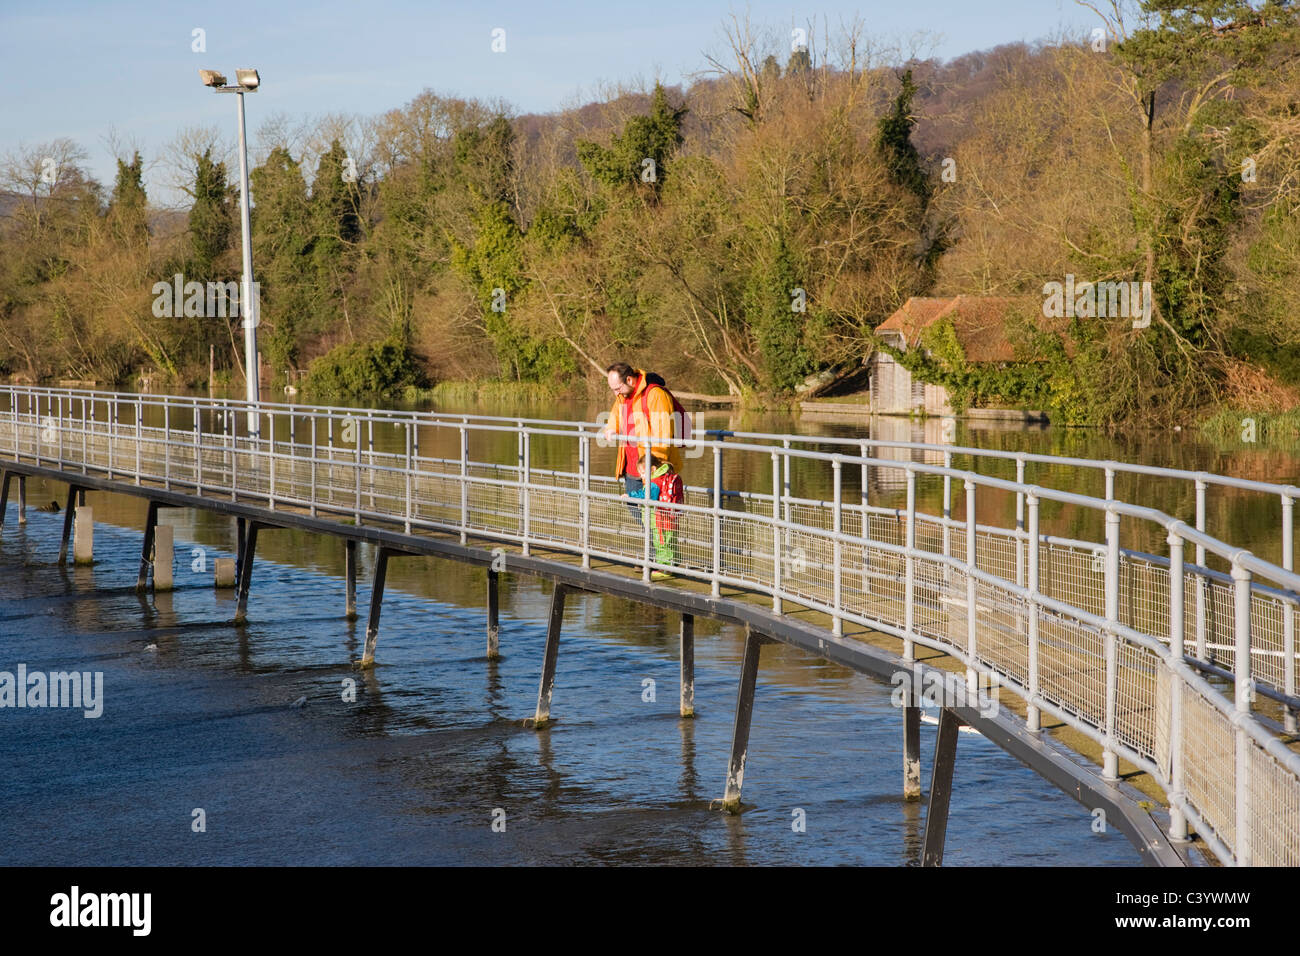 Hambleden Weir downstream of Henley-on-Thames. Oxfordshire. England. UK - Stock Image